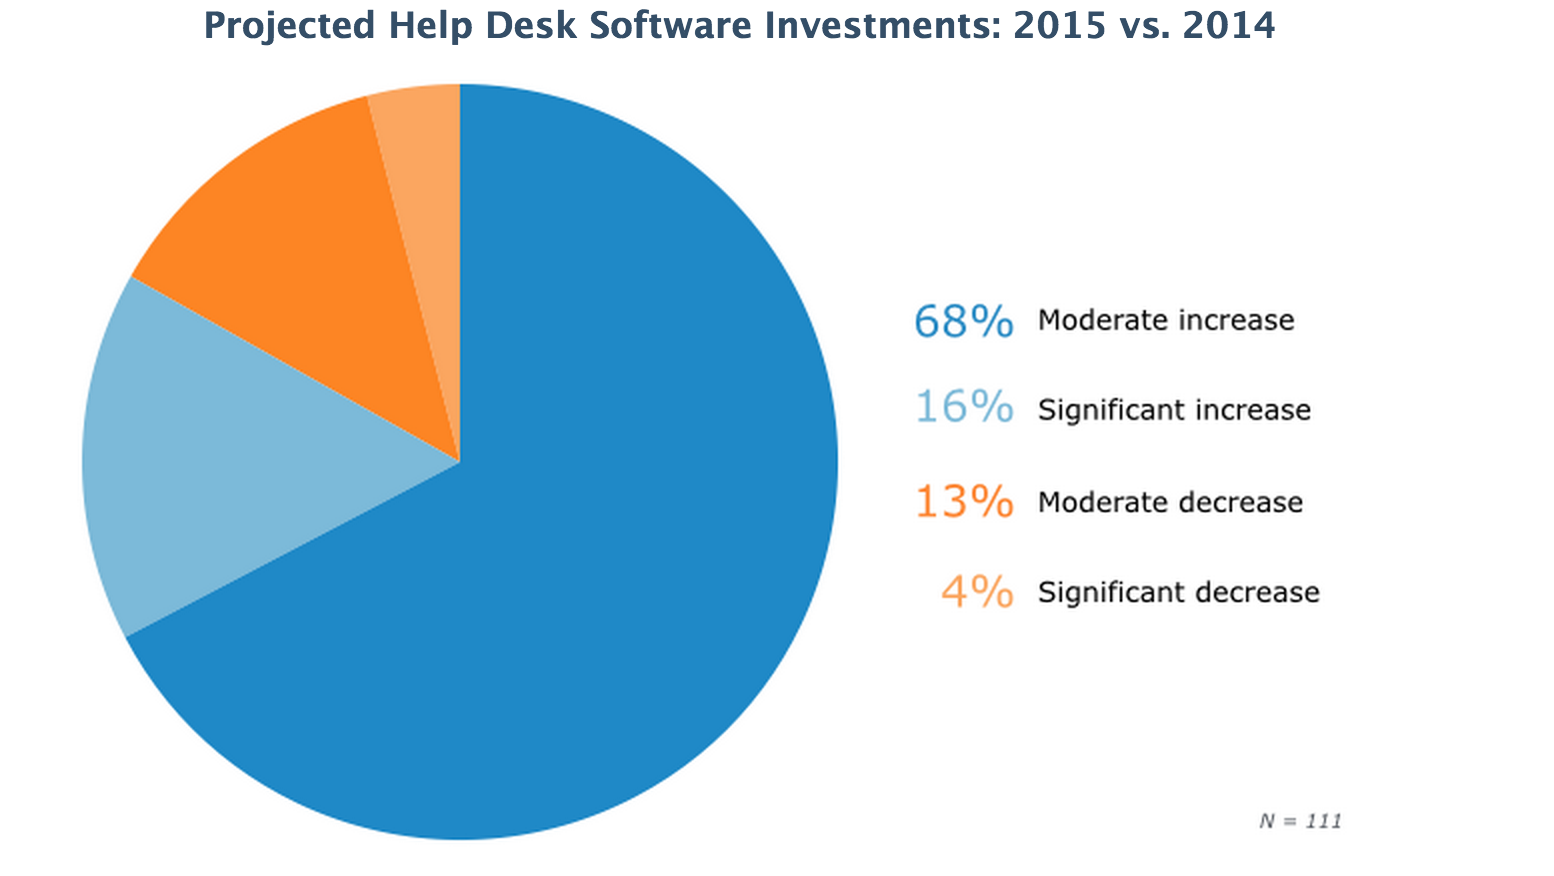 circle diagram showing projected help desk software investments 2015 vs. 2014